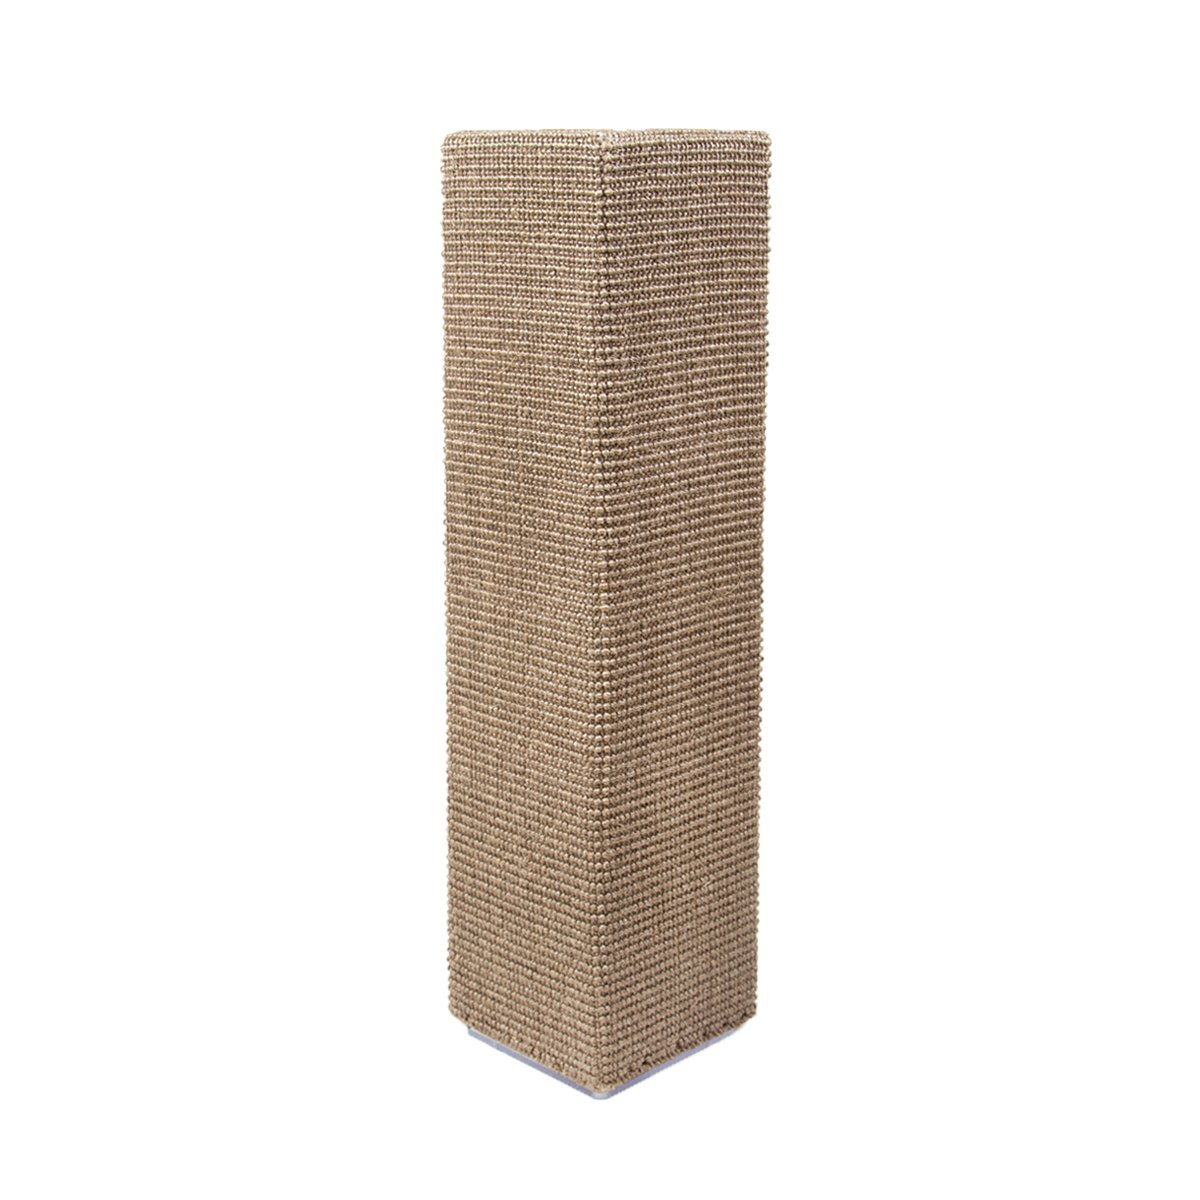 Sofa-Scratcher Squared' Cat Scratching Post & Couch-Corner/Furniture Protector (Olive) by Sofa-Scratcher